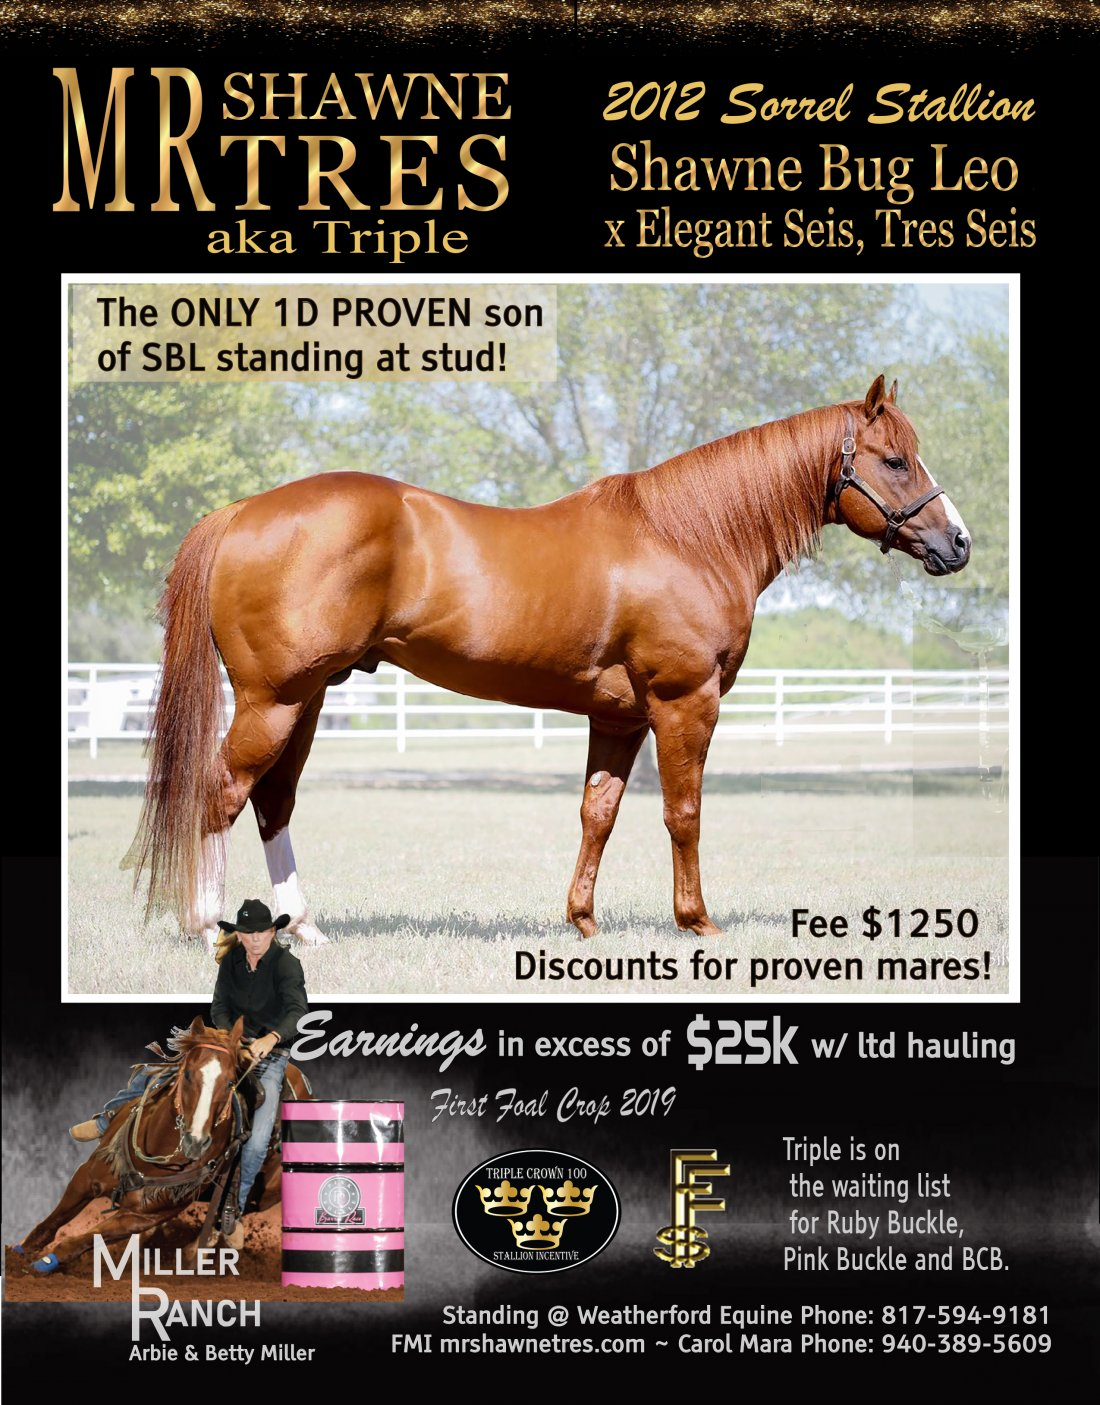 Thank you Cara Mara and Miller Ranch for choosing BHot Market for your stallion flyer design.